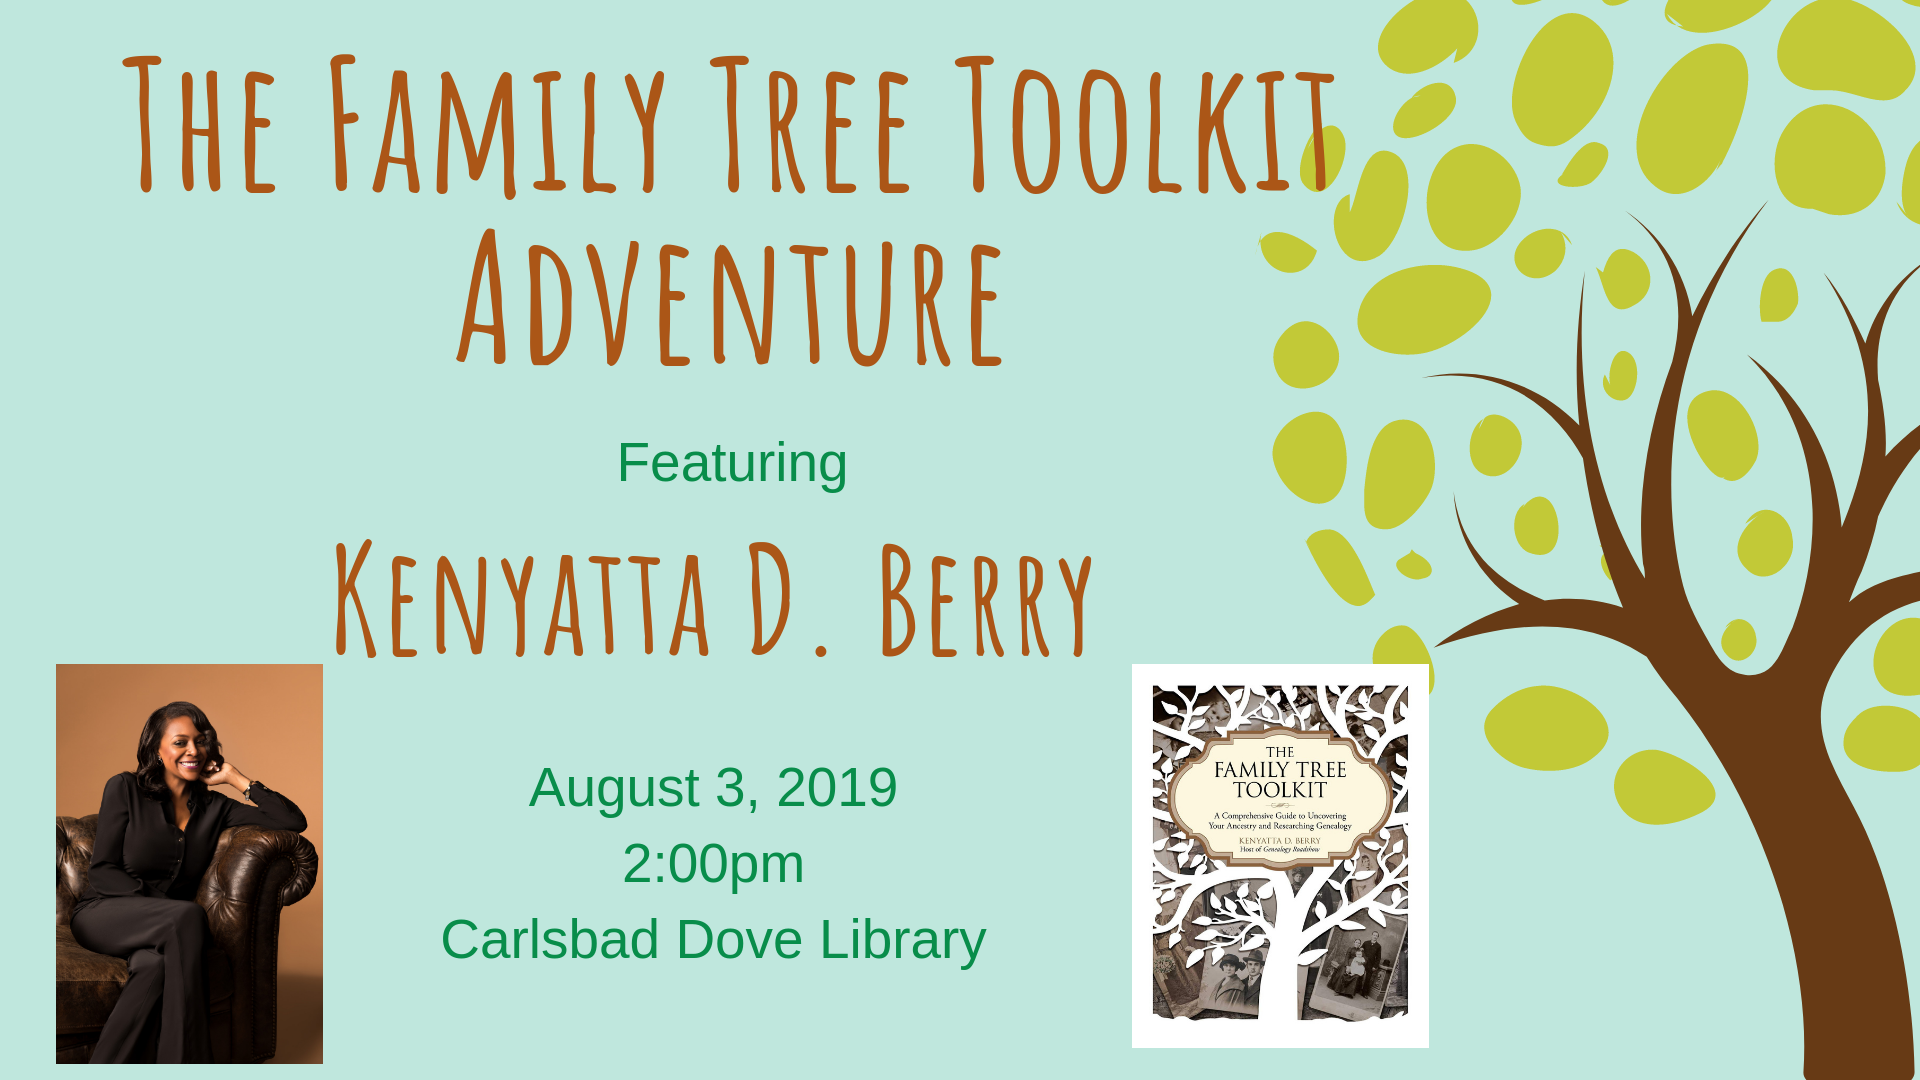 The Family Tree Toolkit Free Library Adventure - Adventures